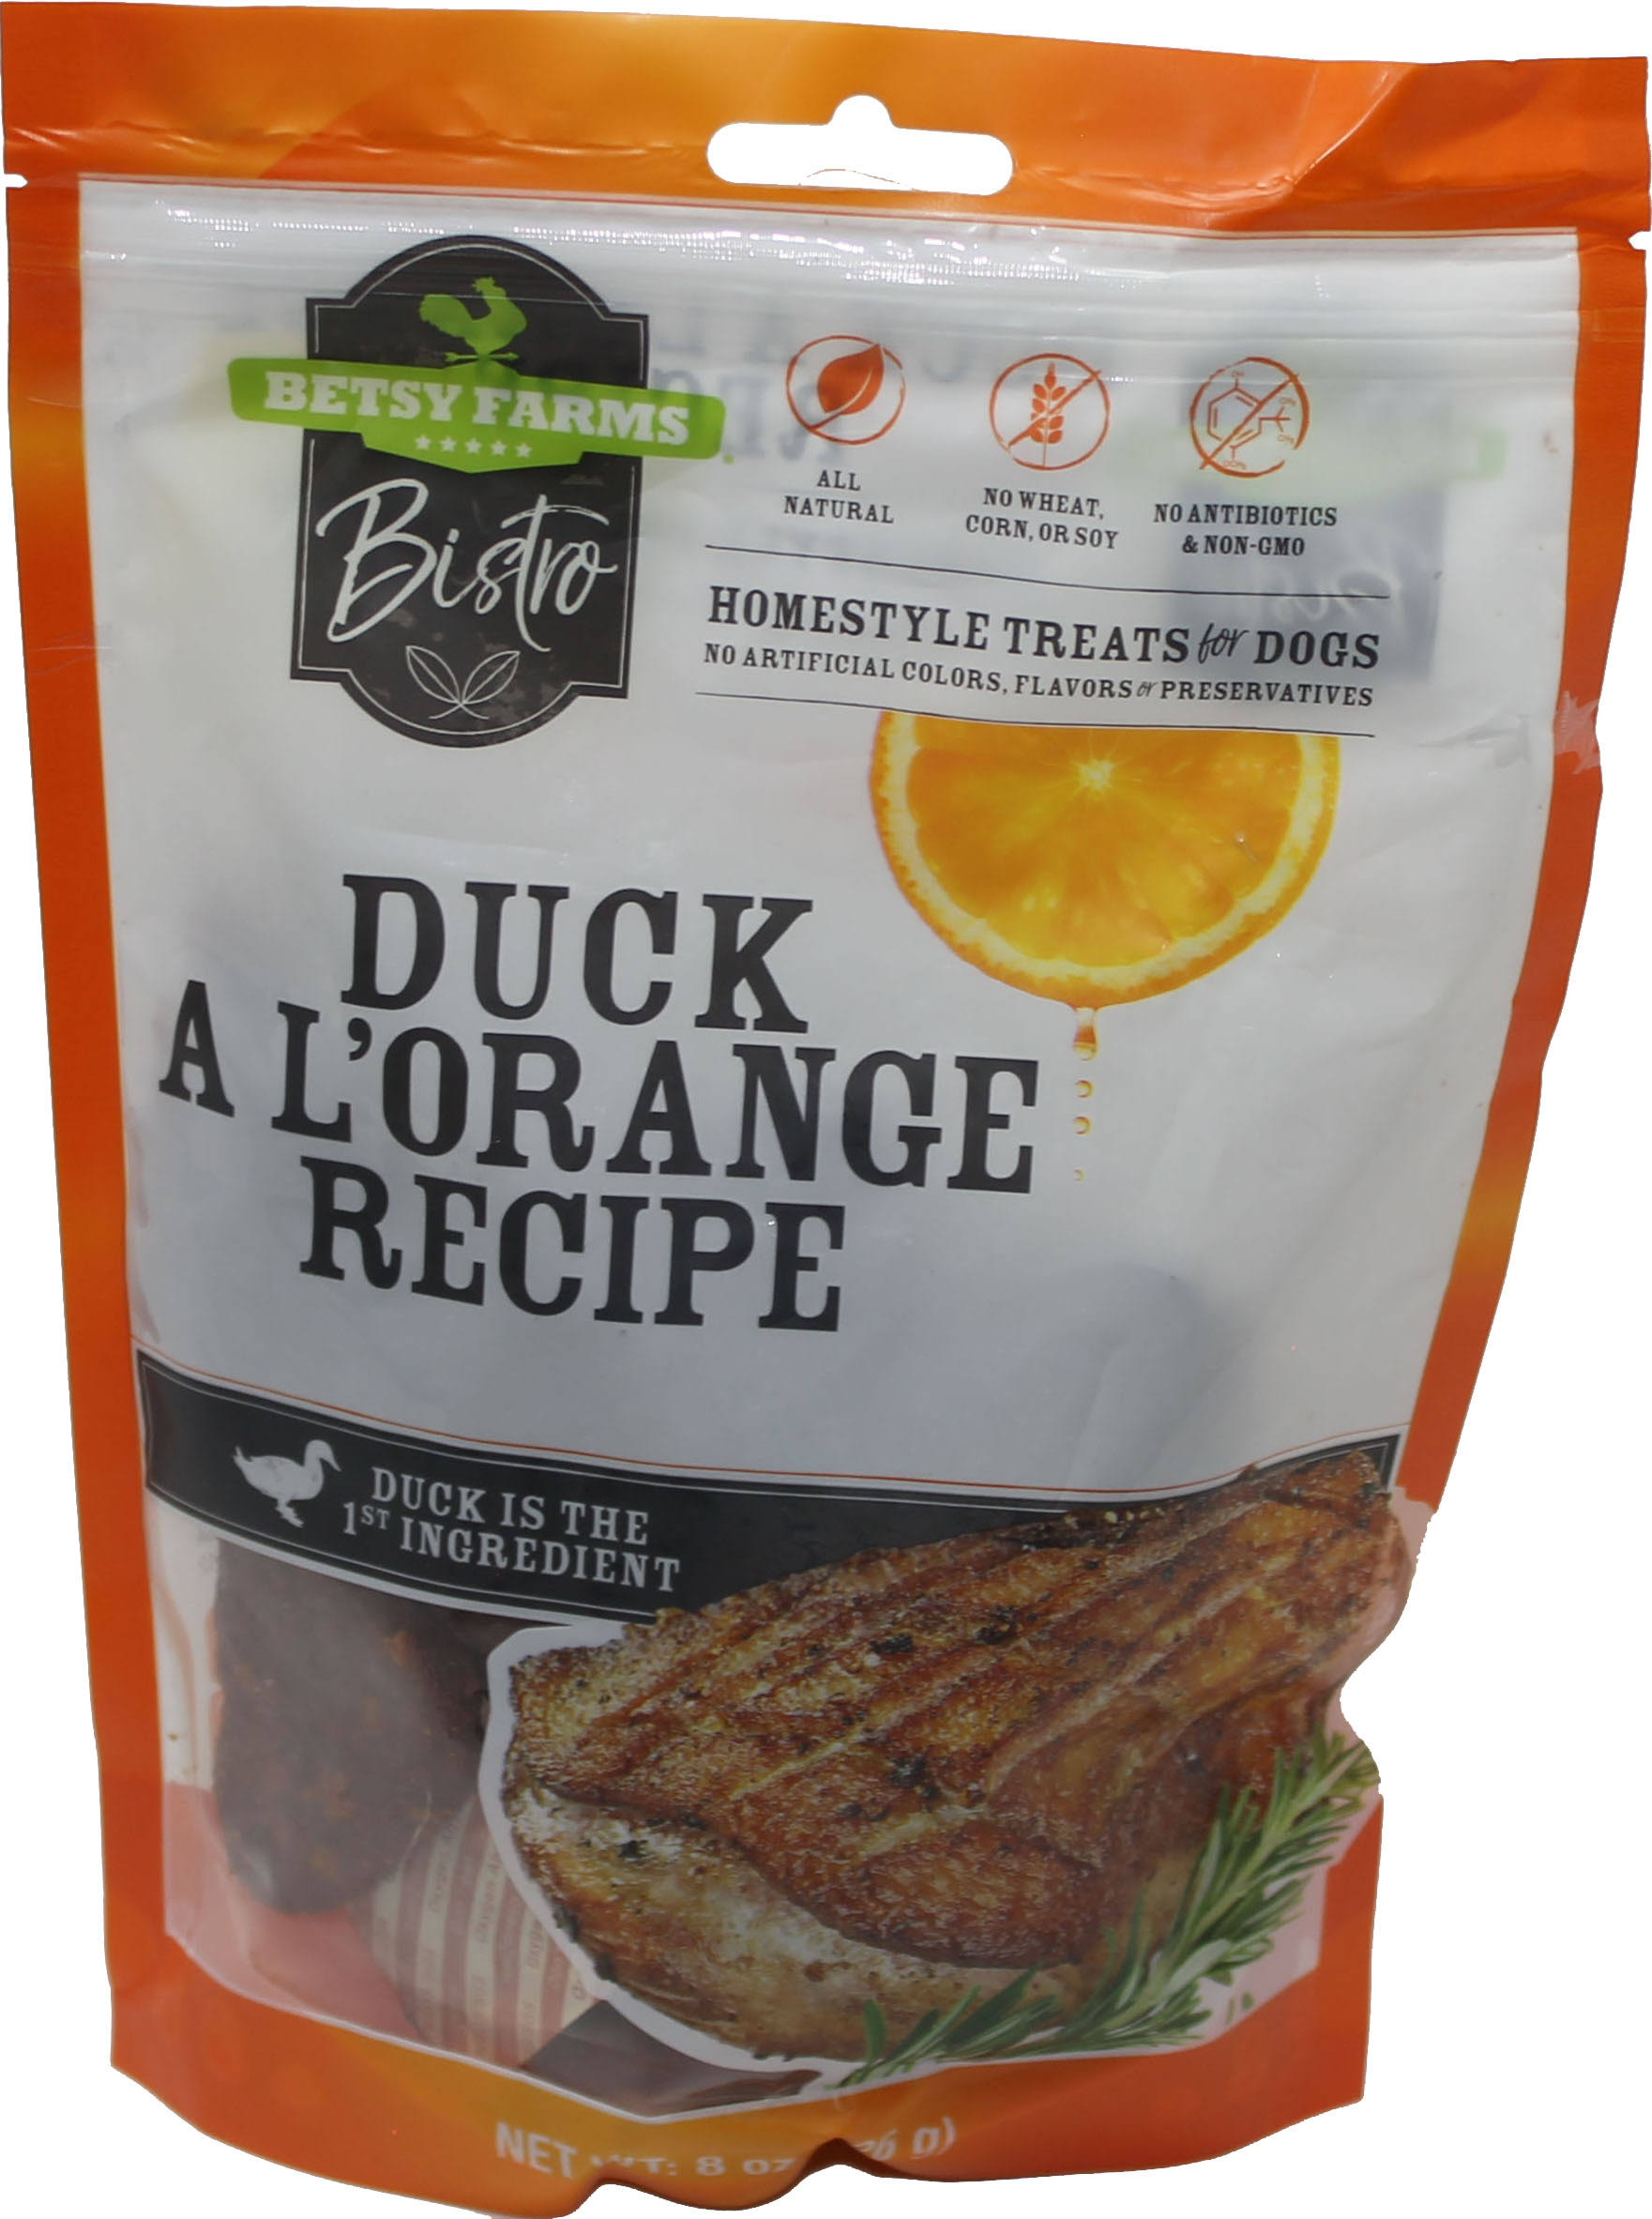 Betsy Farms Bistro Treat for Dogs, Duck a L'Orange Recipe Recipe, Homestyle - 8 oz